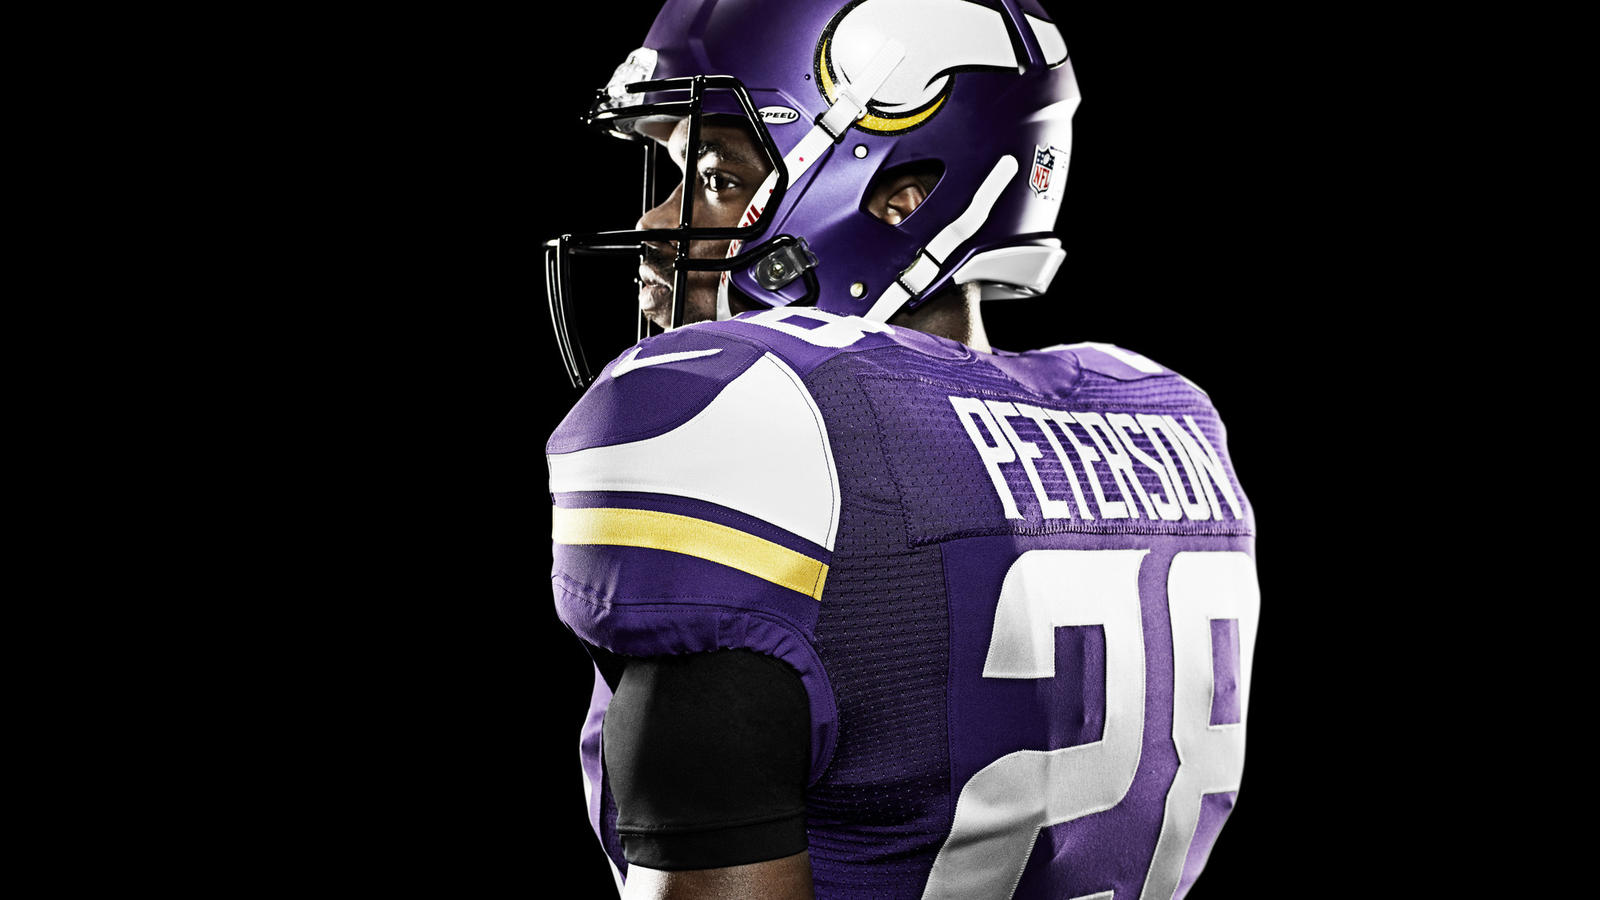 peterson-vikings-nfl-nike-elite-51-uniform-side